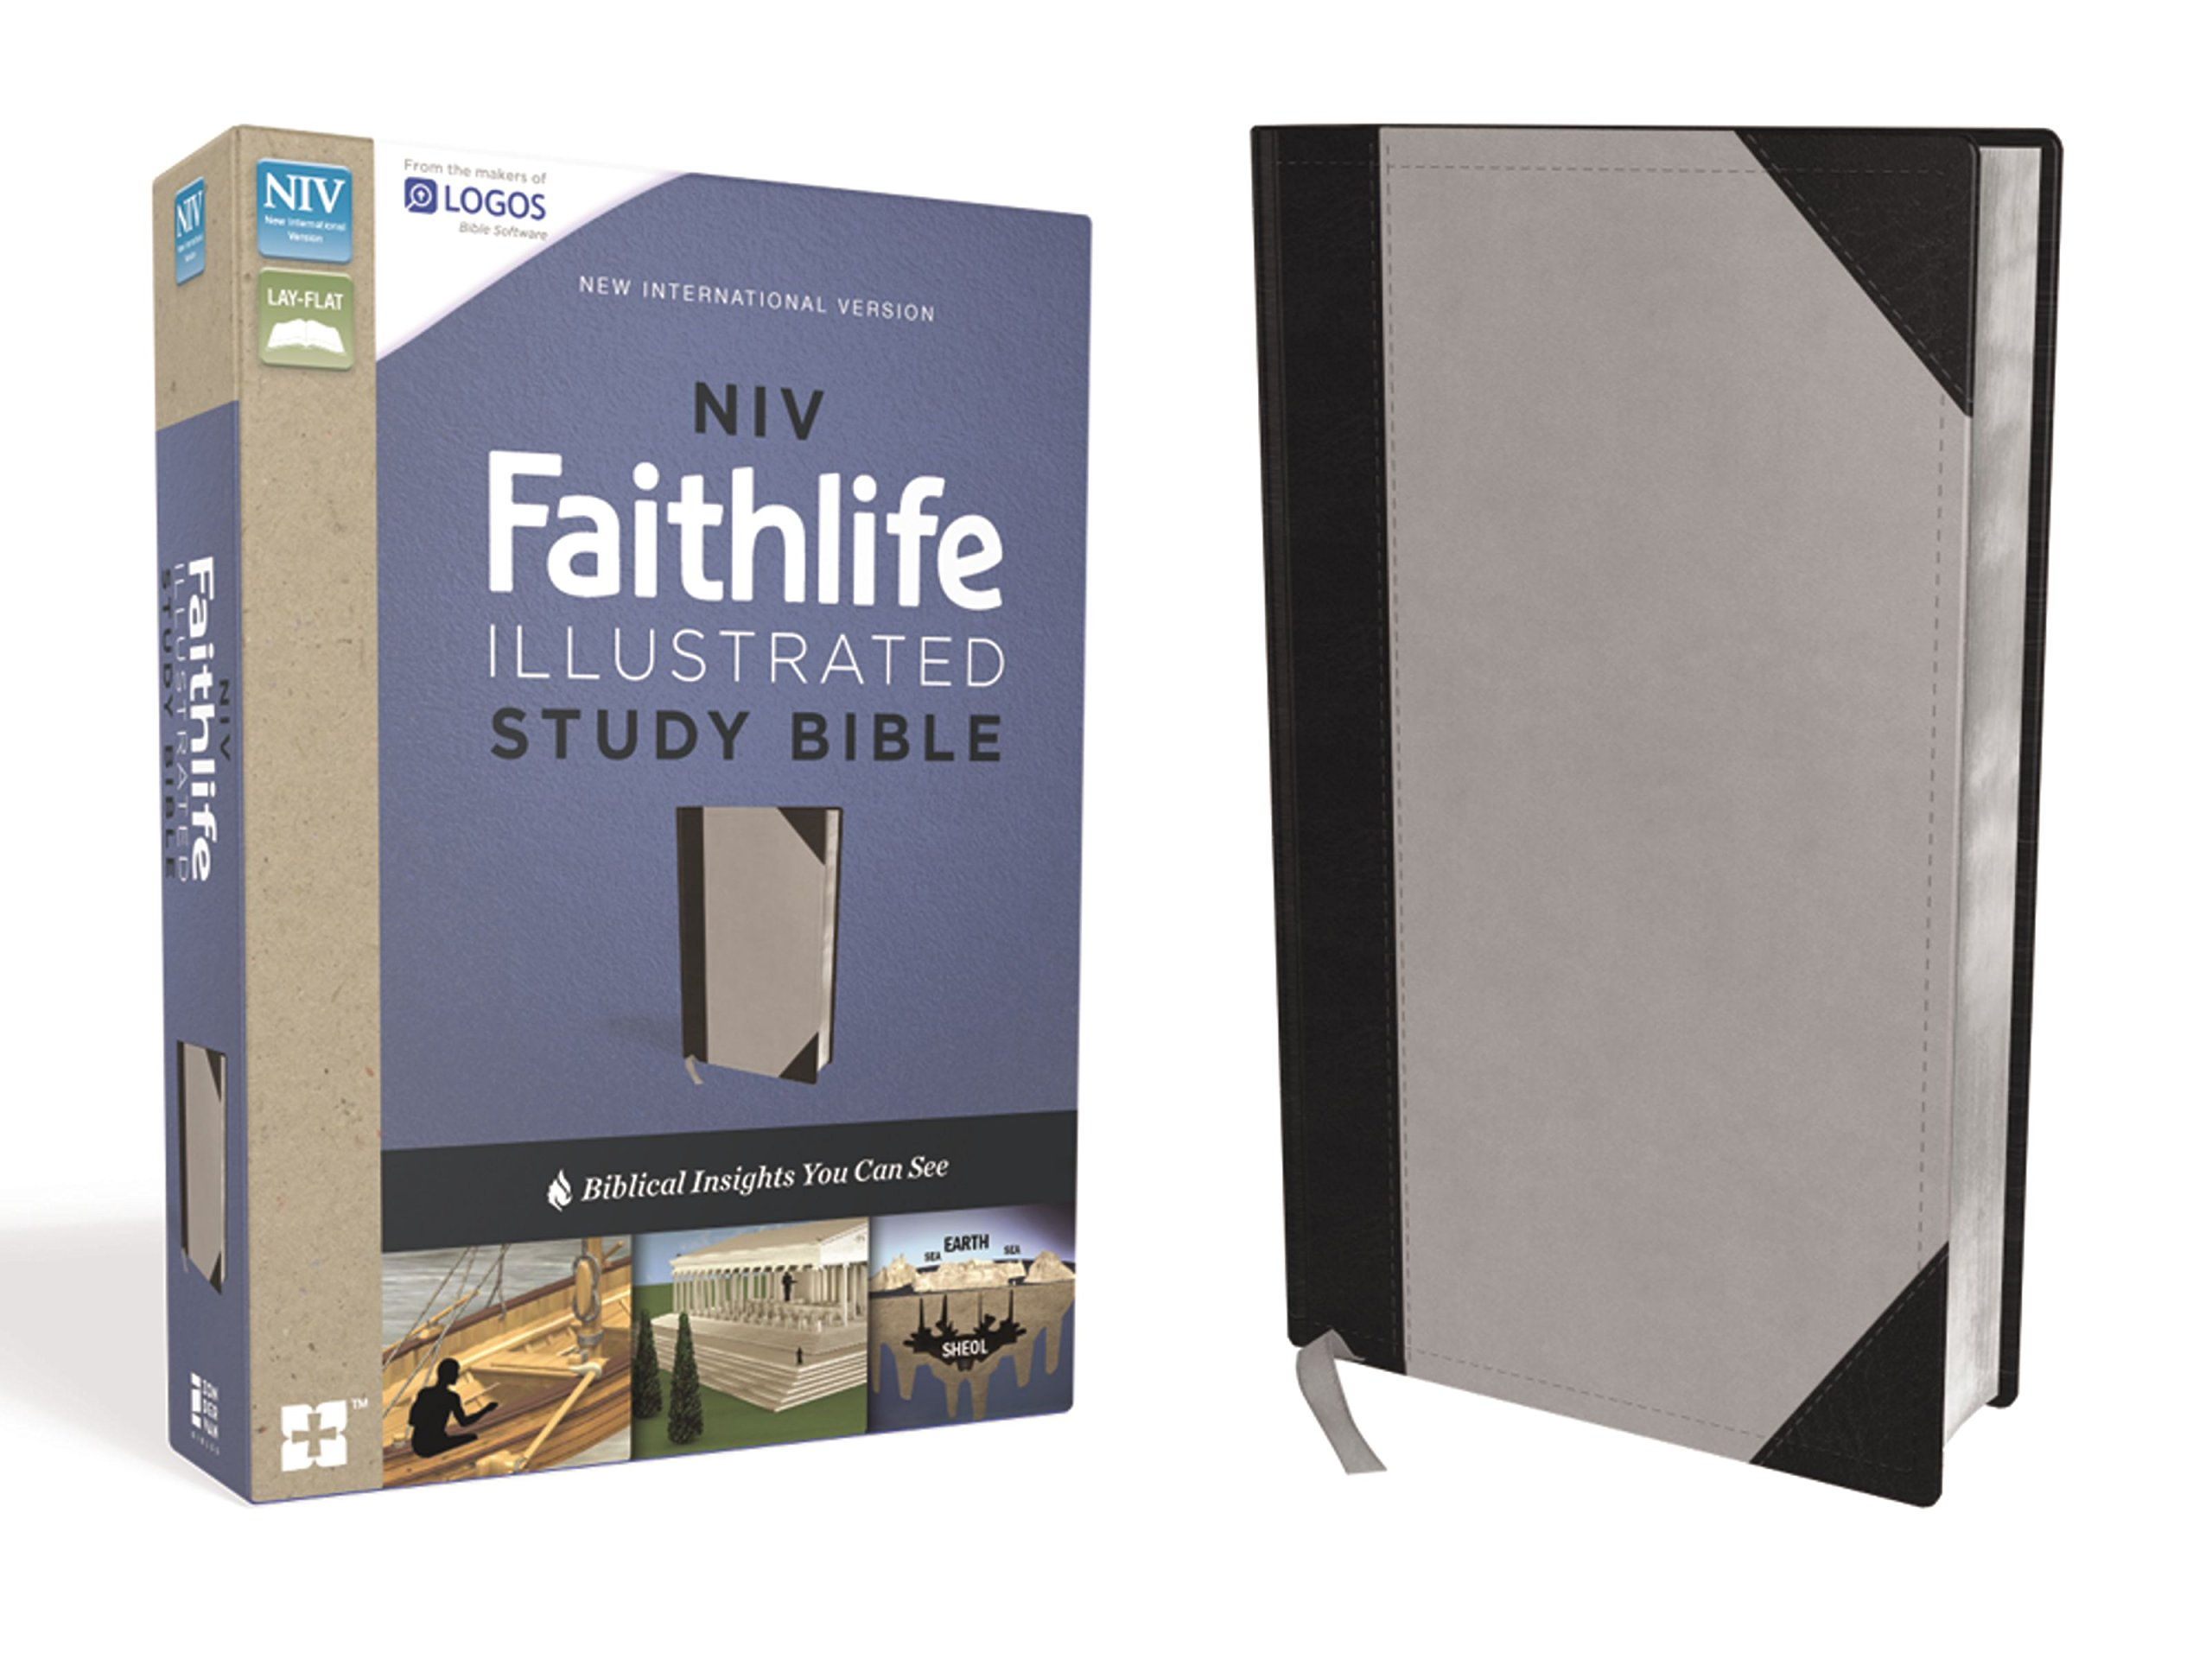 Read Online NIV, Faithlife Illustrated Study Bible, Leathersoft, Gray/Black: Biblical Insights You Can See pdf